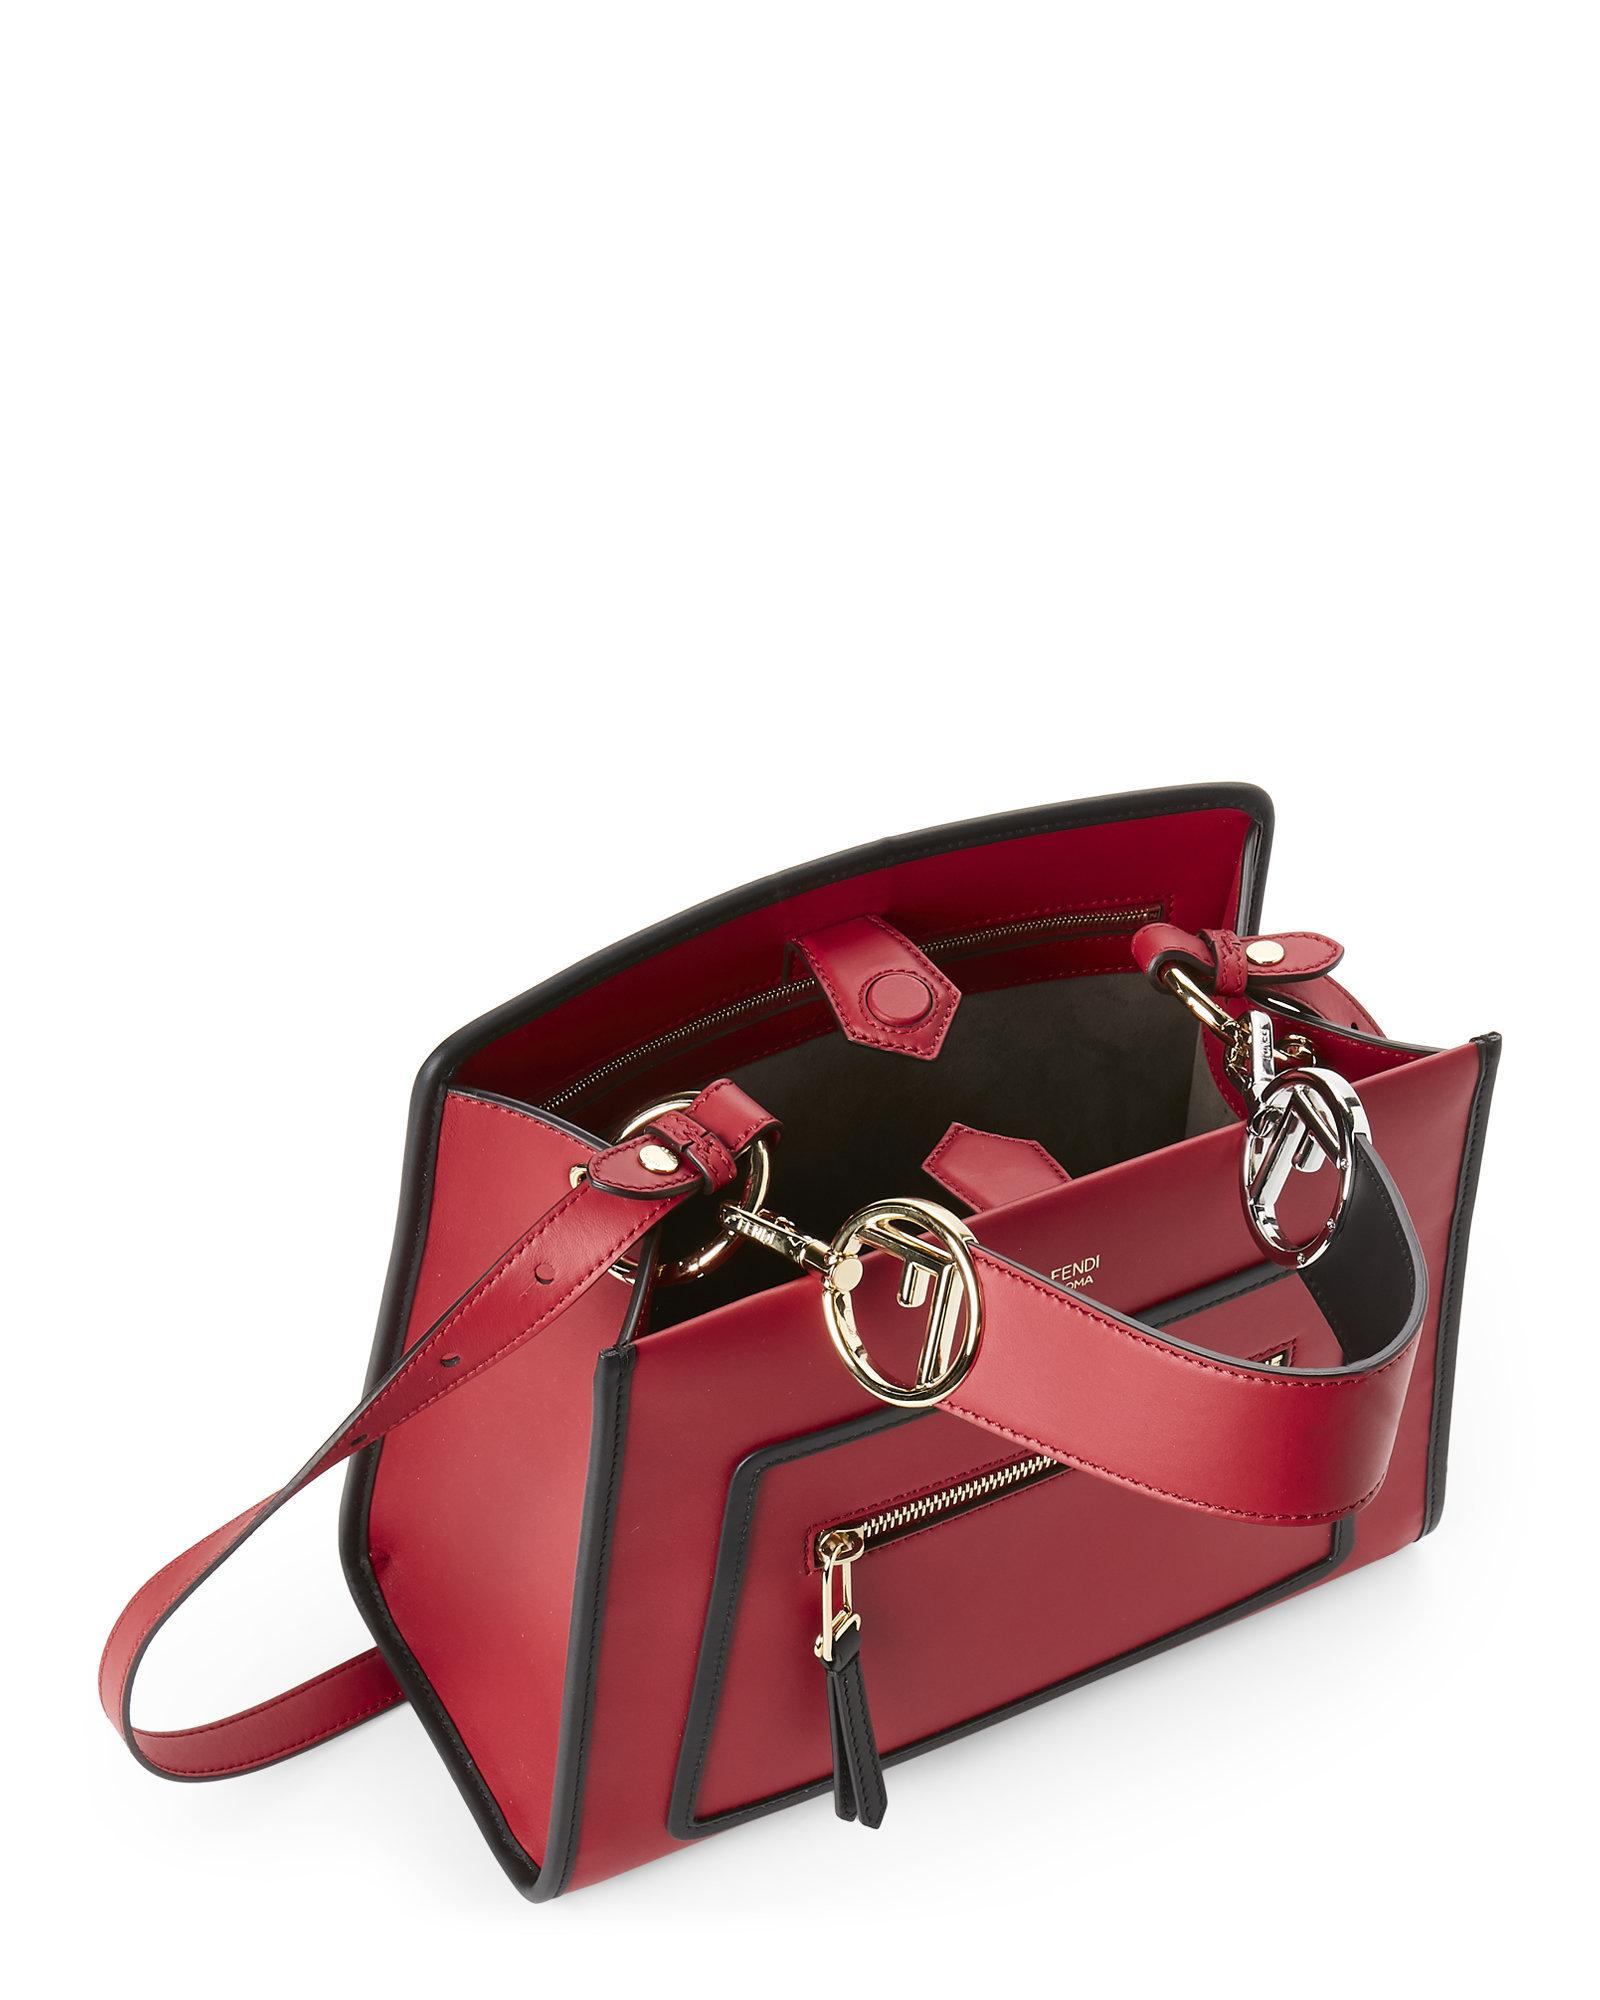 2880d7019122 Lyst - Fendi Runway Small Leather Tote in Red